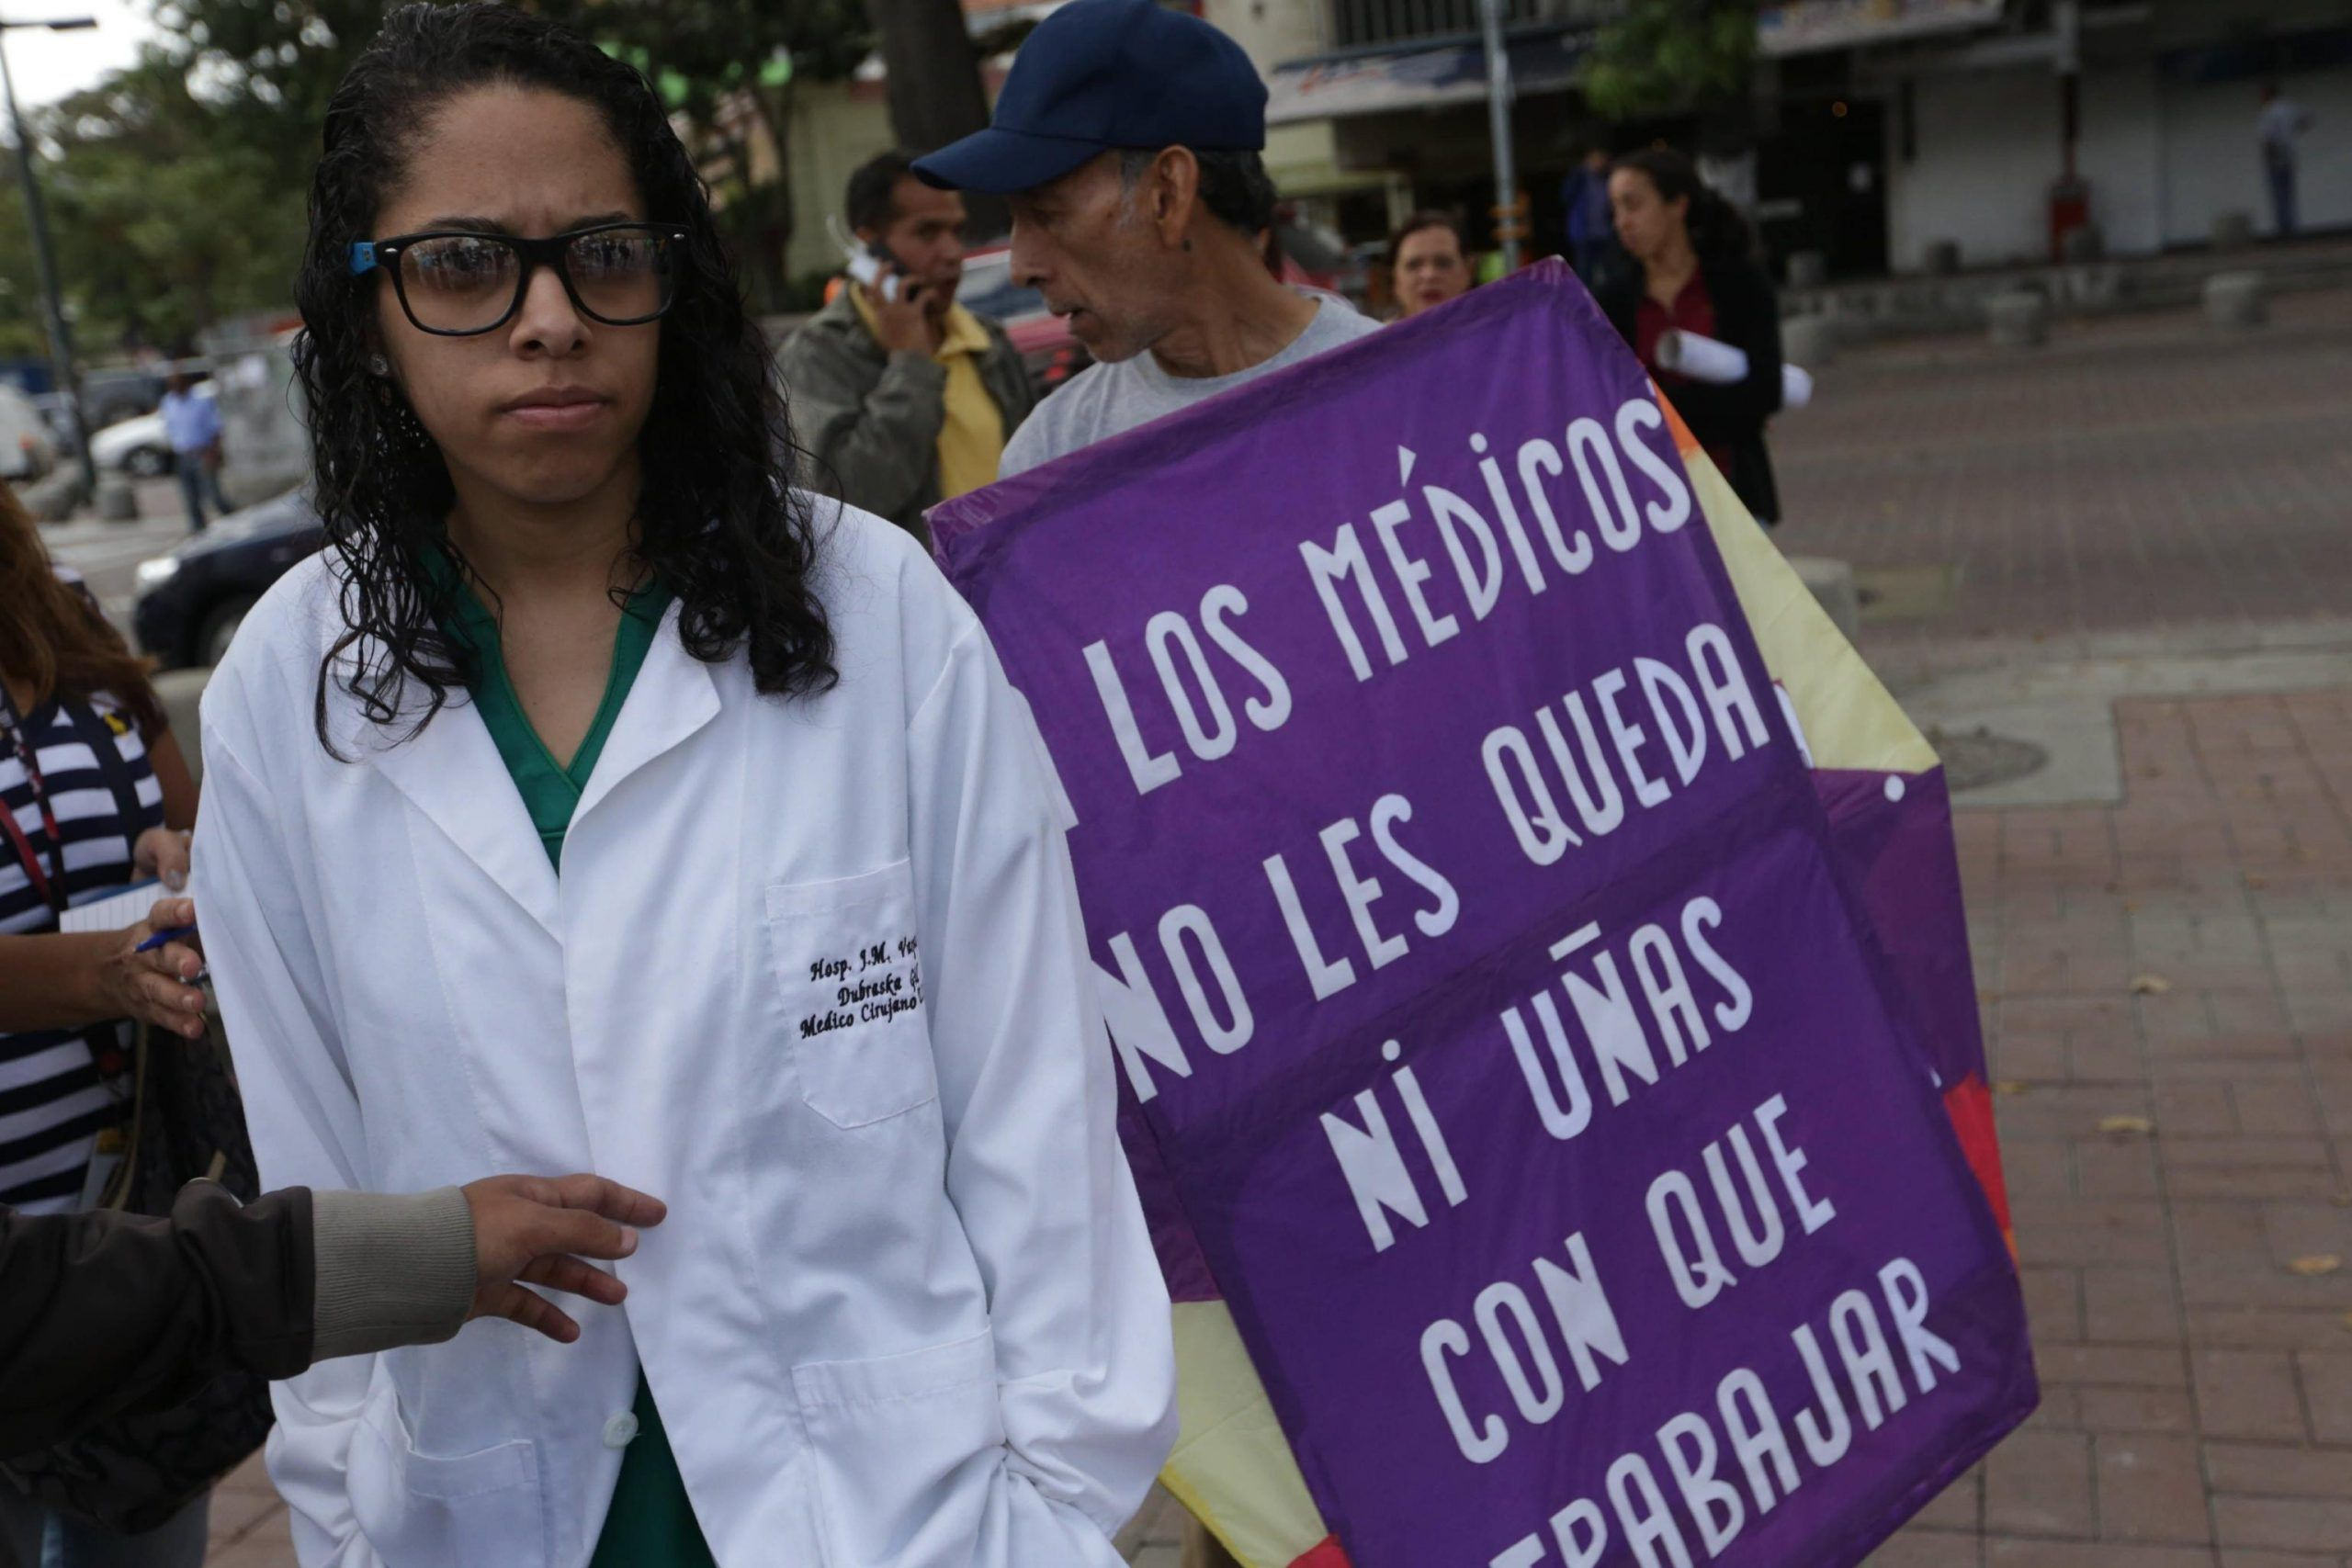 Students and health representatives demand action for the health sector in Venezuela